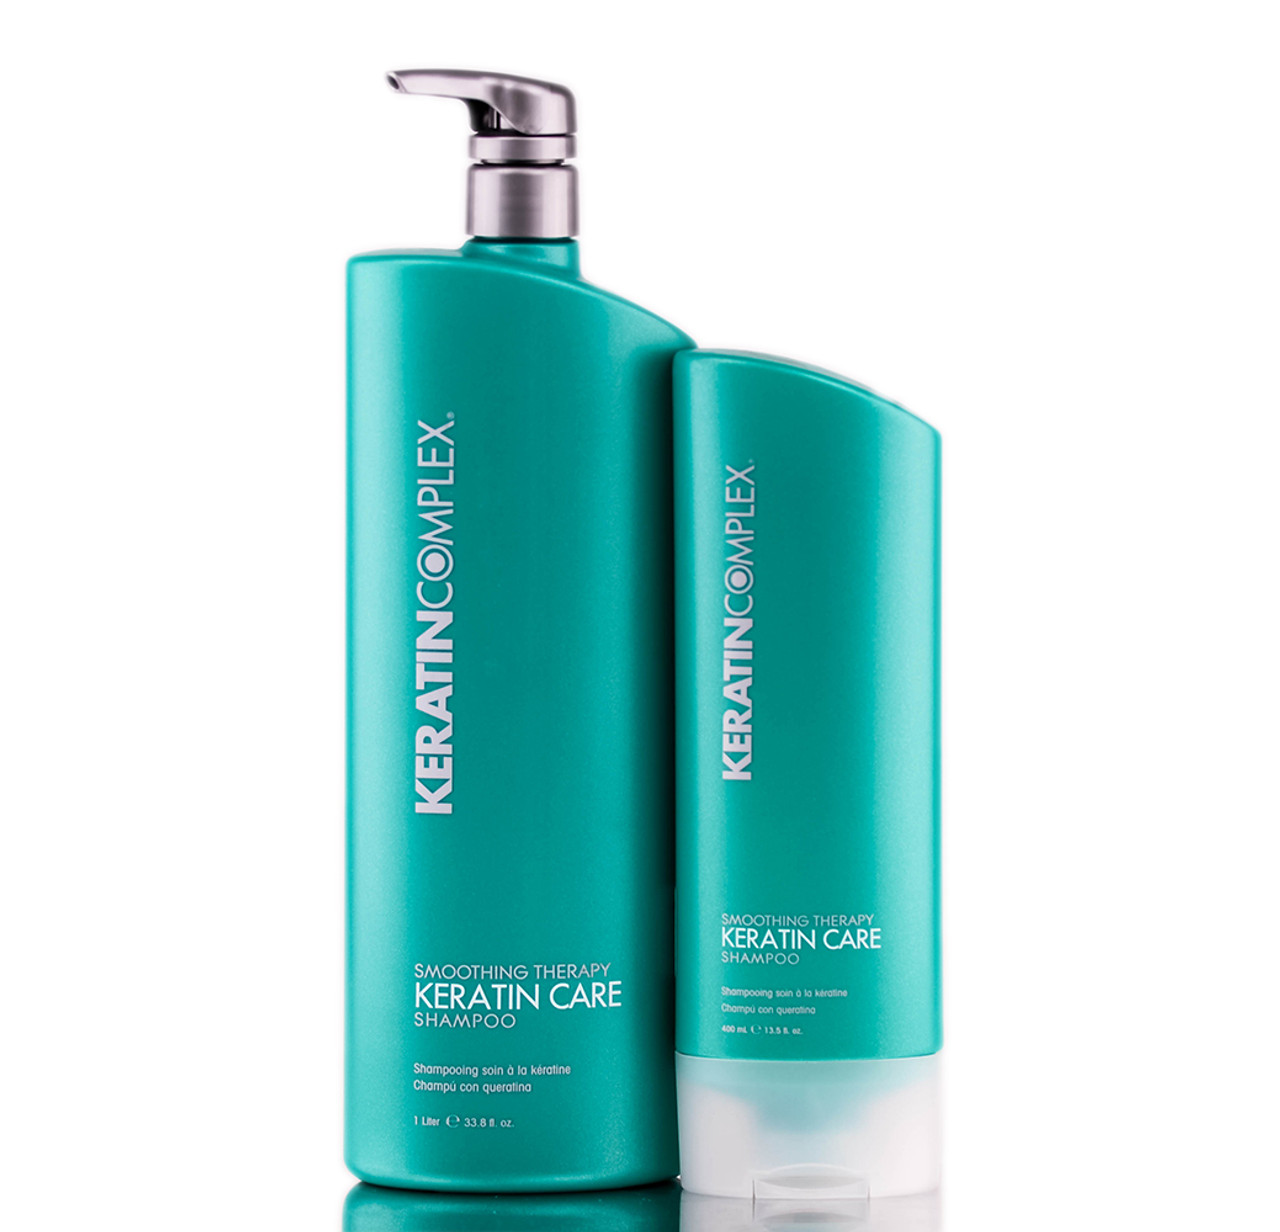 coppola keratin complex smoothing therapy keratin care shampoo formerly sleekhair. Black Bedroom Furniture Sets. Home Design Ideas